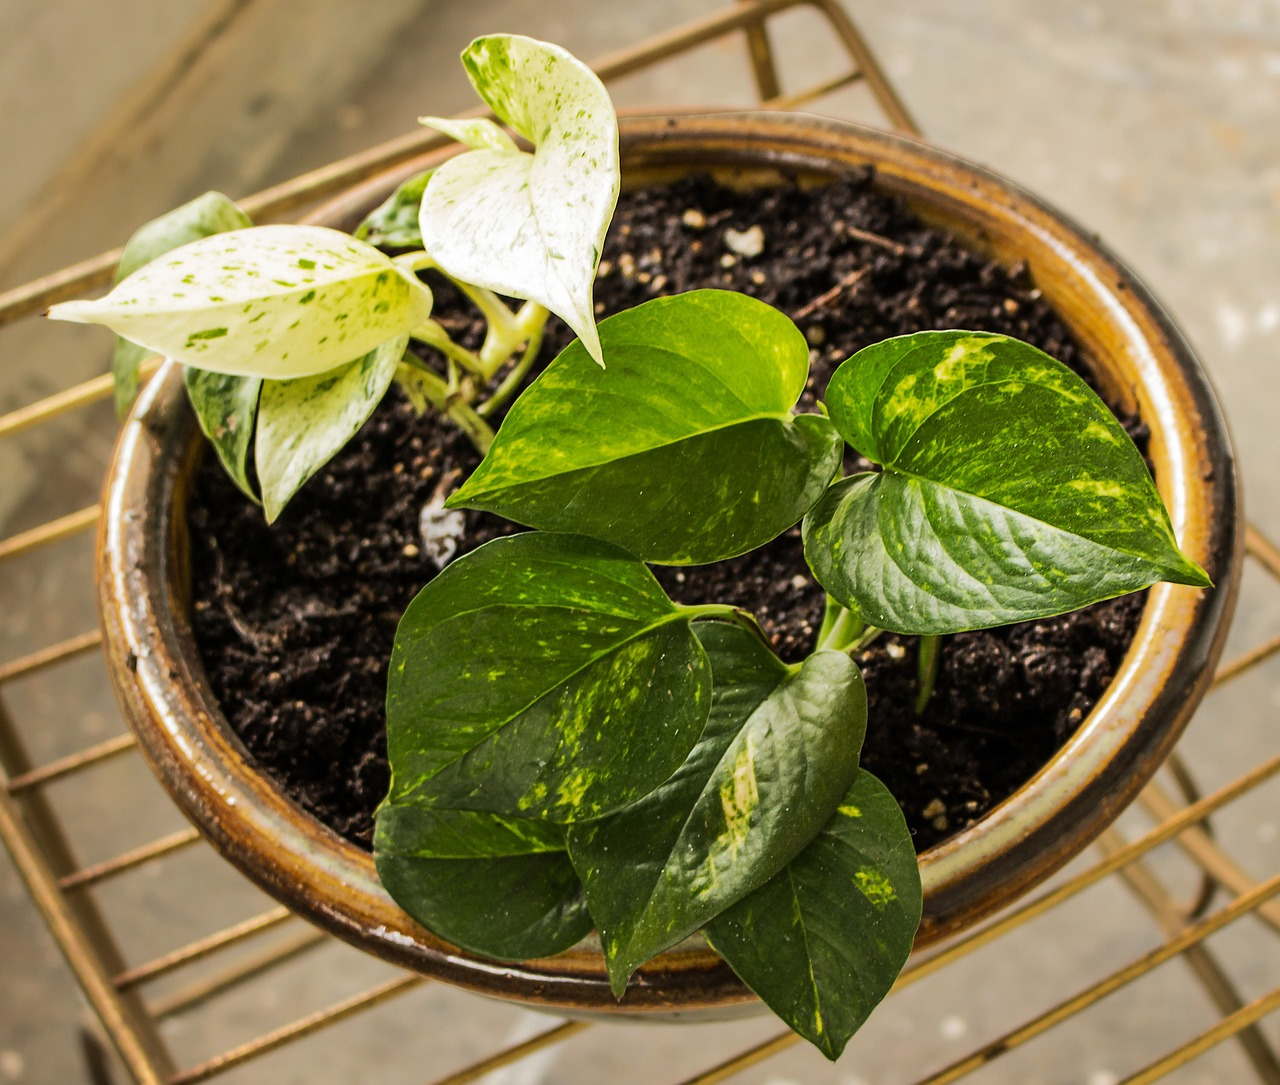 The 10 best houseplants for purifying indoor air